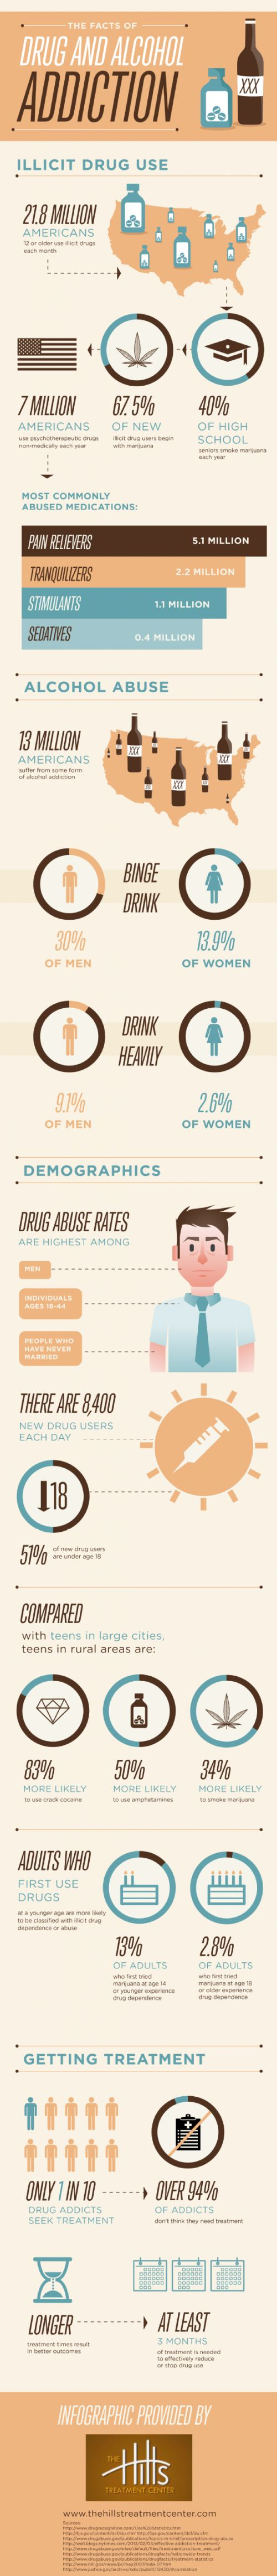 The Facts of Drug and Alcohol Addiction �